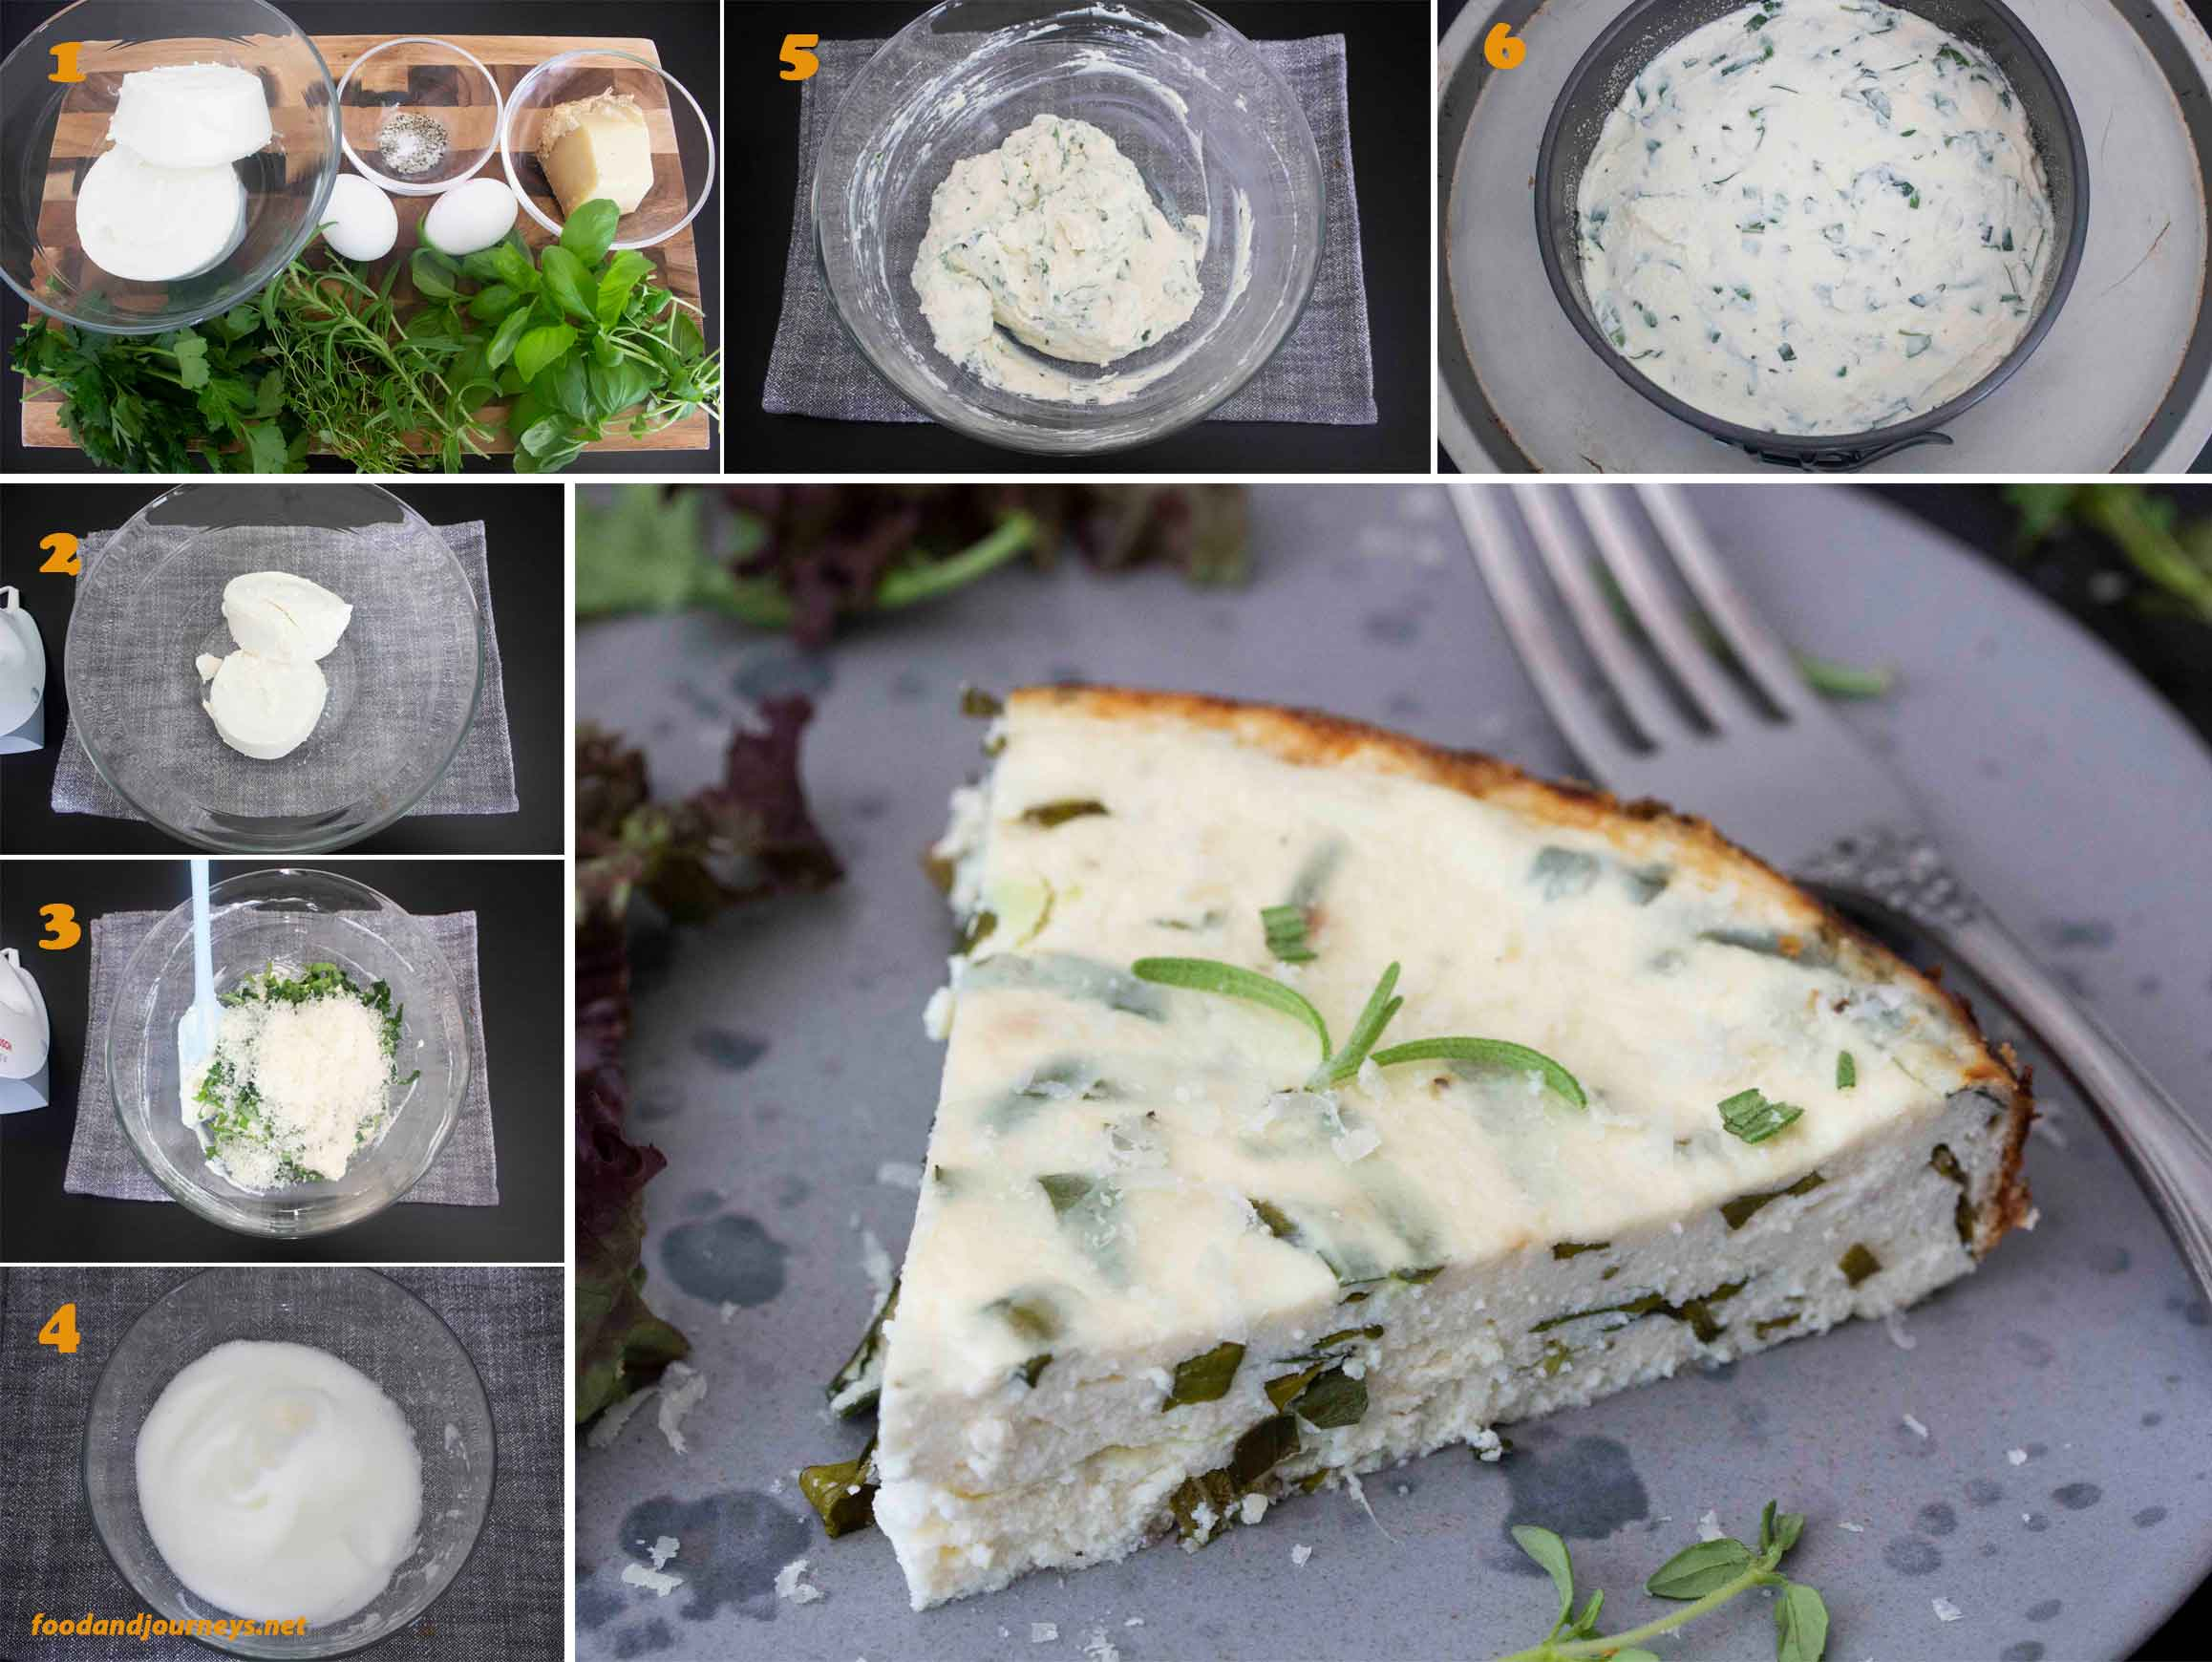 A collage of images showing the step by step process on how to make Herbed Ricotta Tart